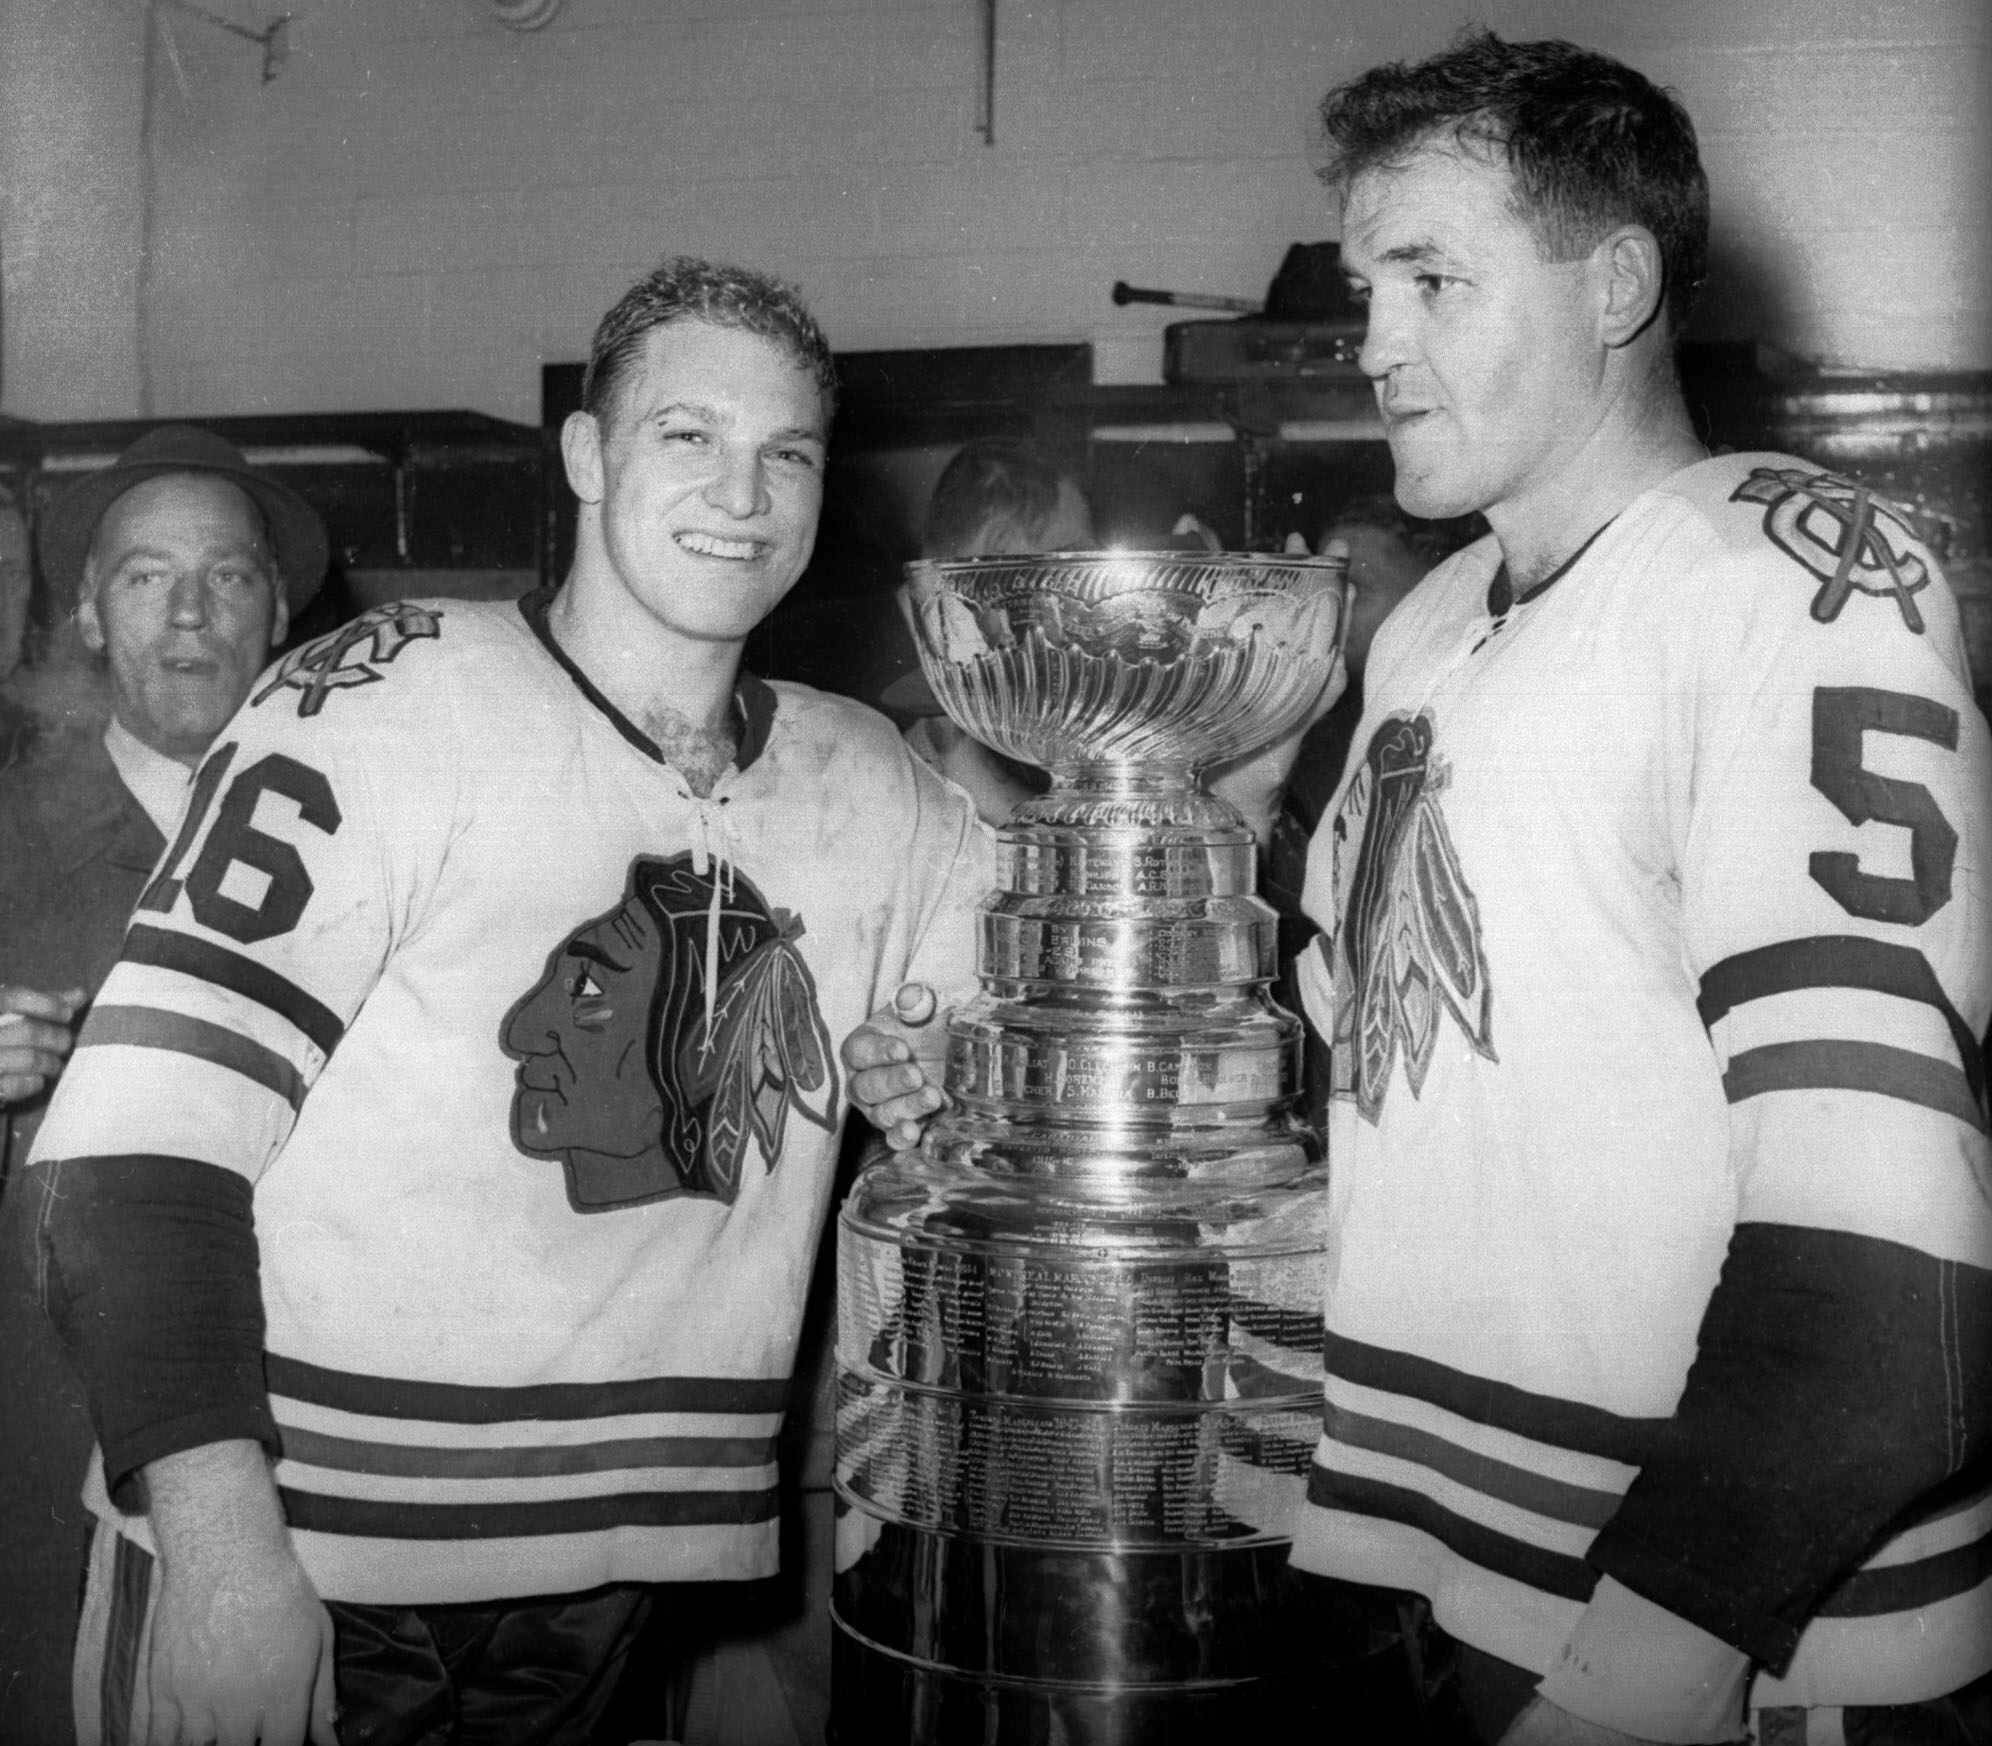 Bobby Hull, left, and Jack Evans of the Chicago Blackhawks, are shown in the dressing room with the Stanley Cup after Chicago won the NHL title by downing the Detroit Red Wings 5-1 in this April 16, 1961 photo, in Detroit.